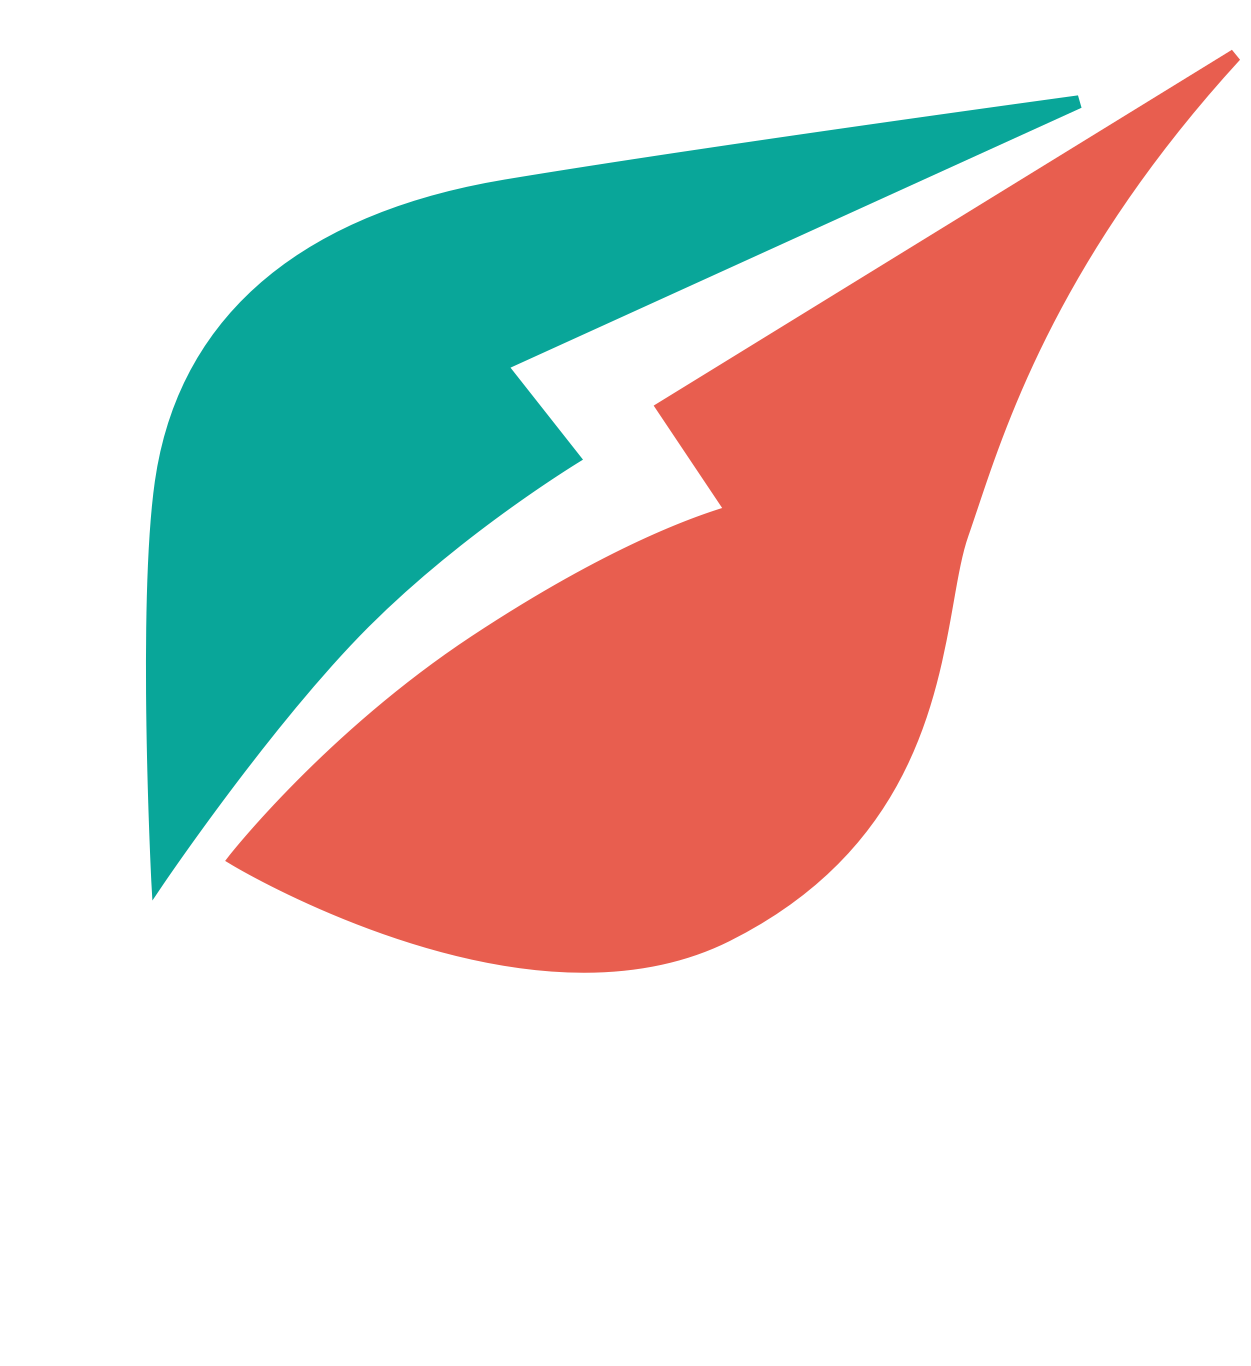 Engineering clipart engineering tool. Wexus technologies new agriculture